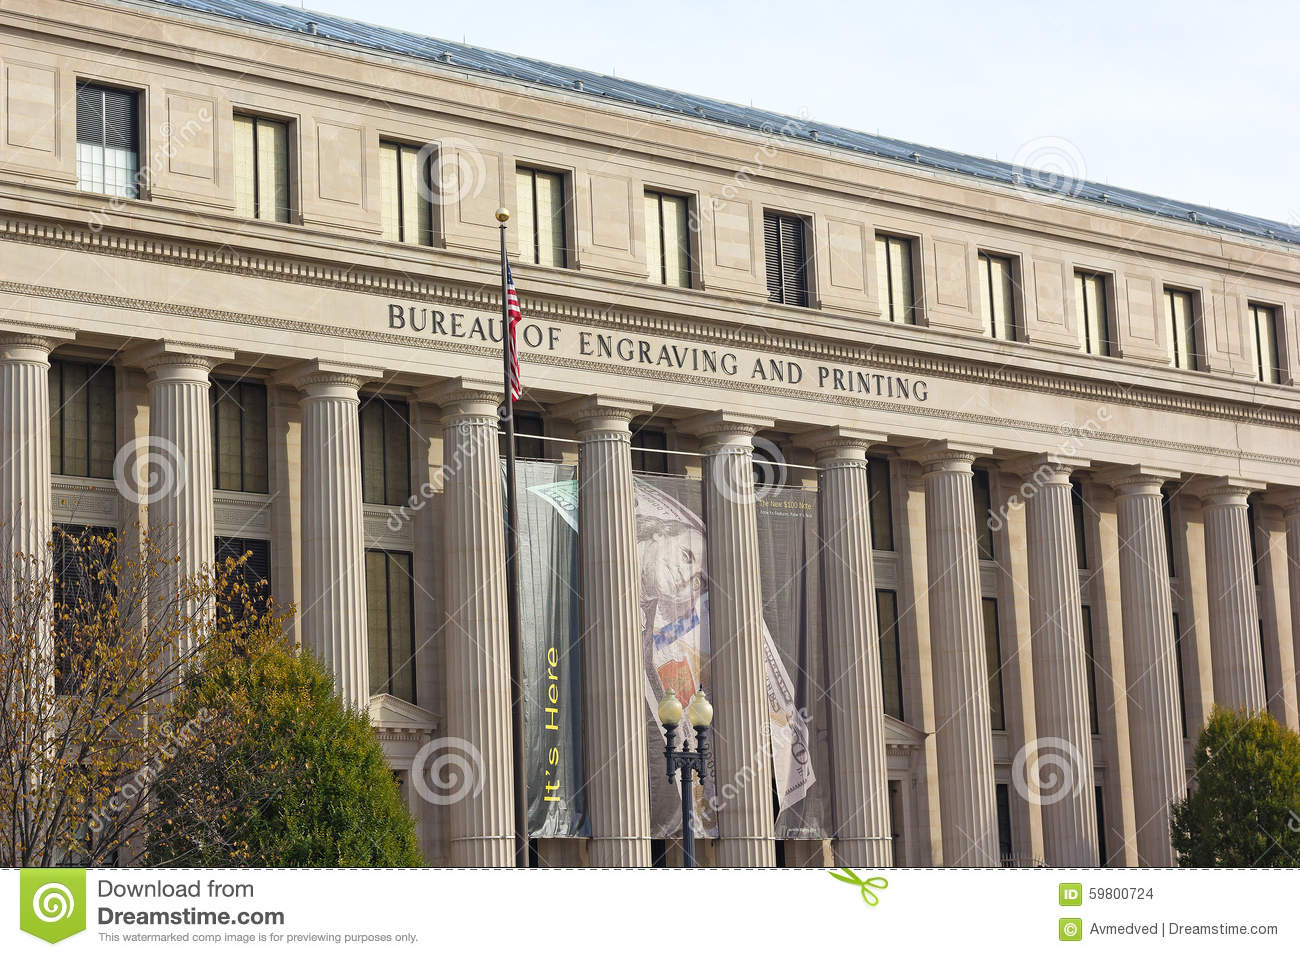 The building of bureau of engraving and printing in washington dc